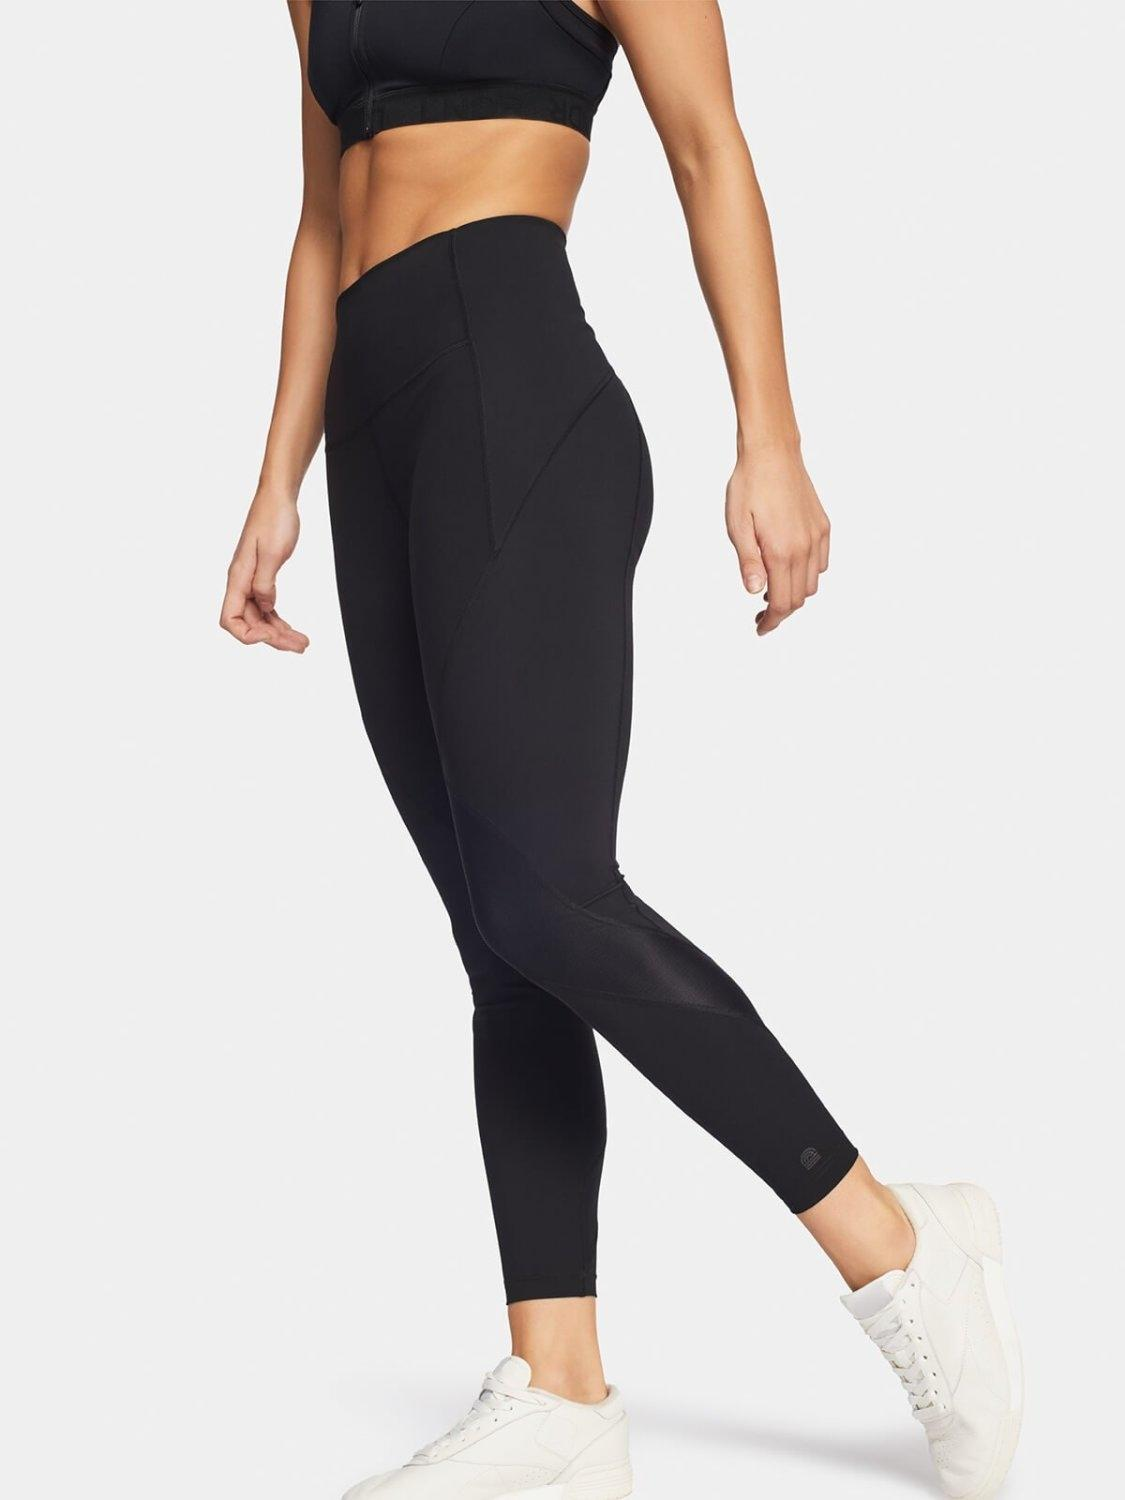 LNDR - Ultra-Form 7/8 Legging